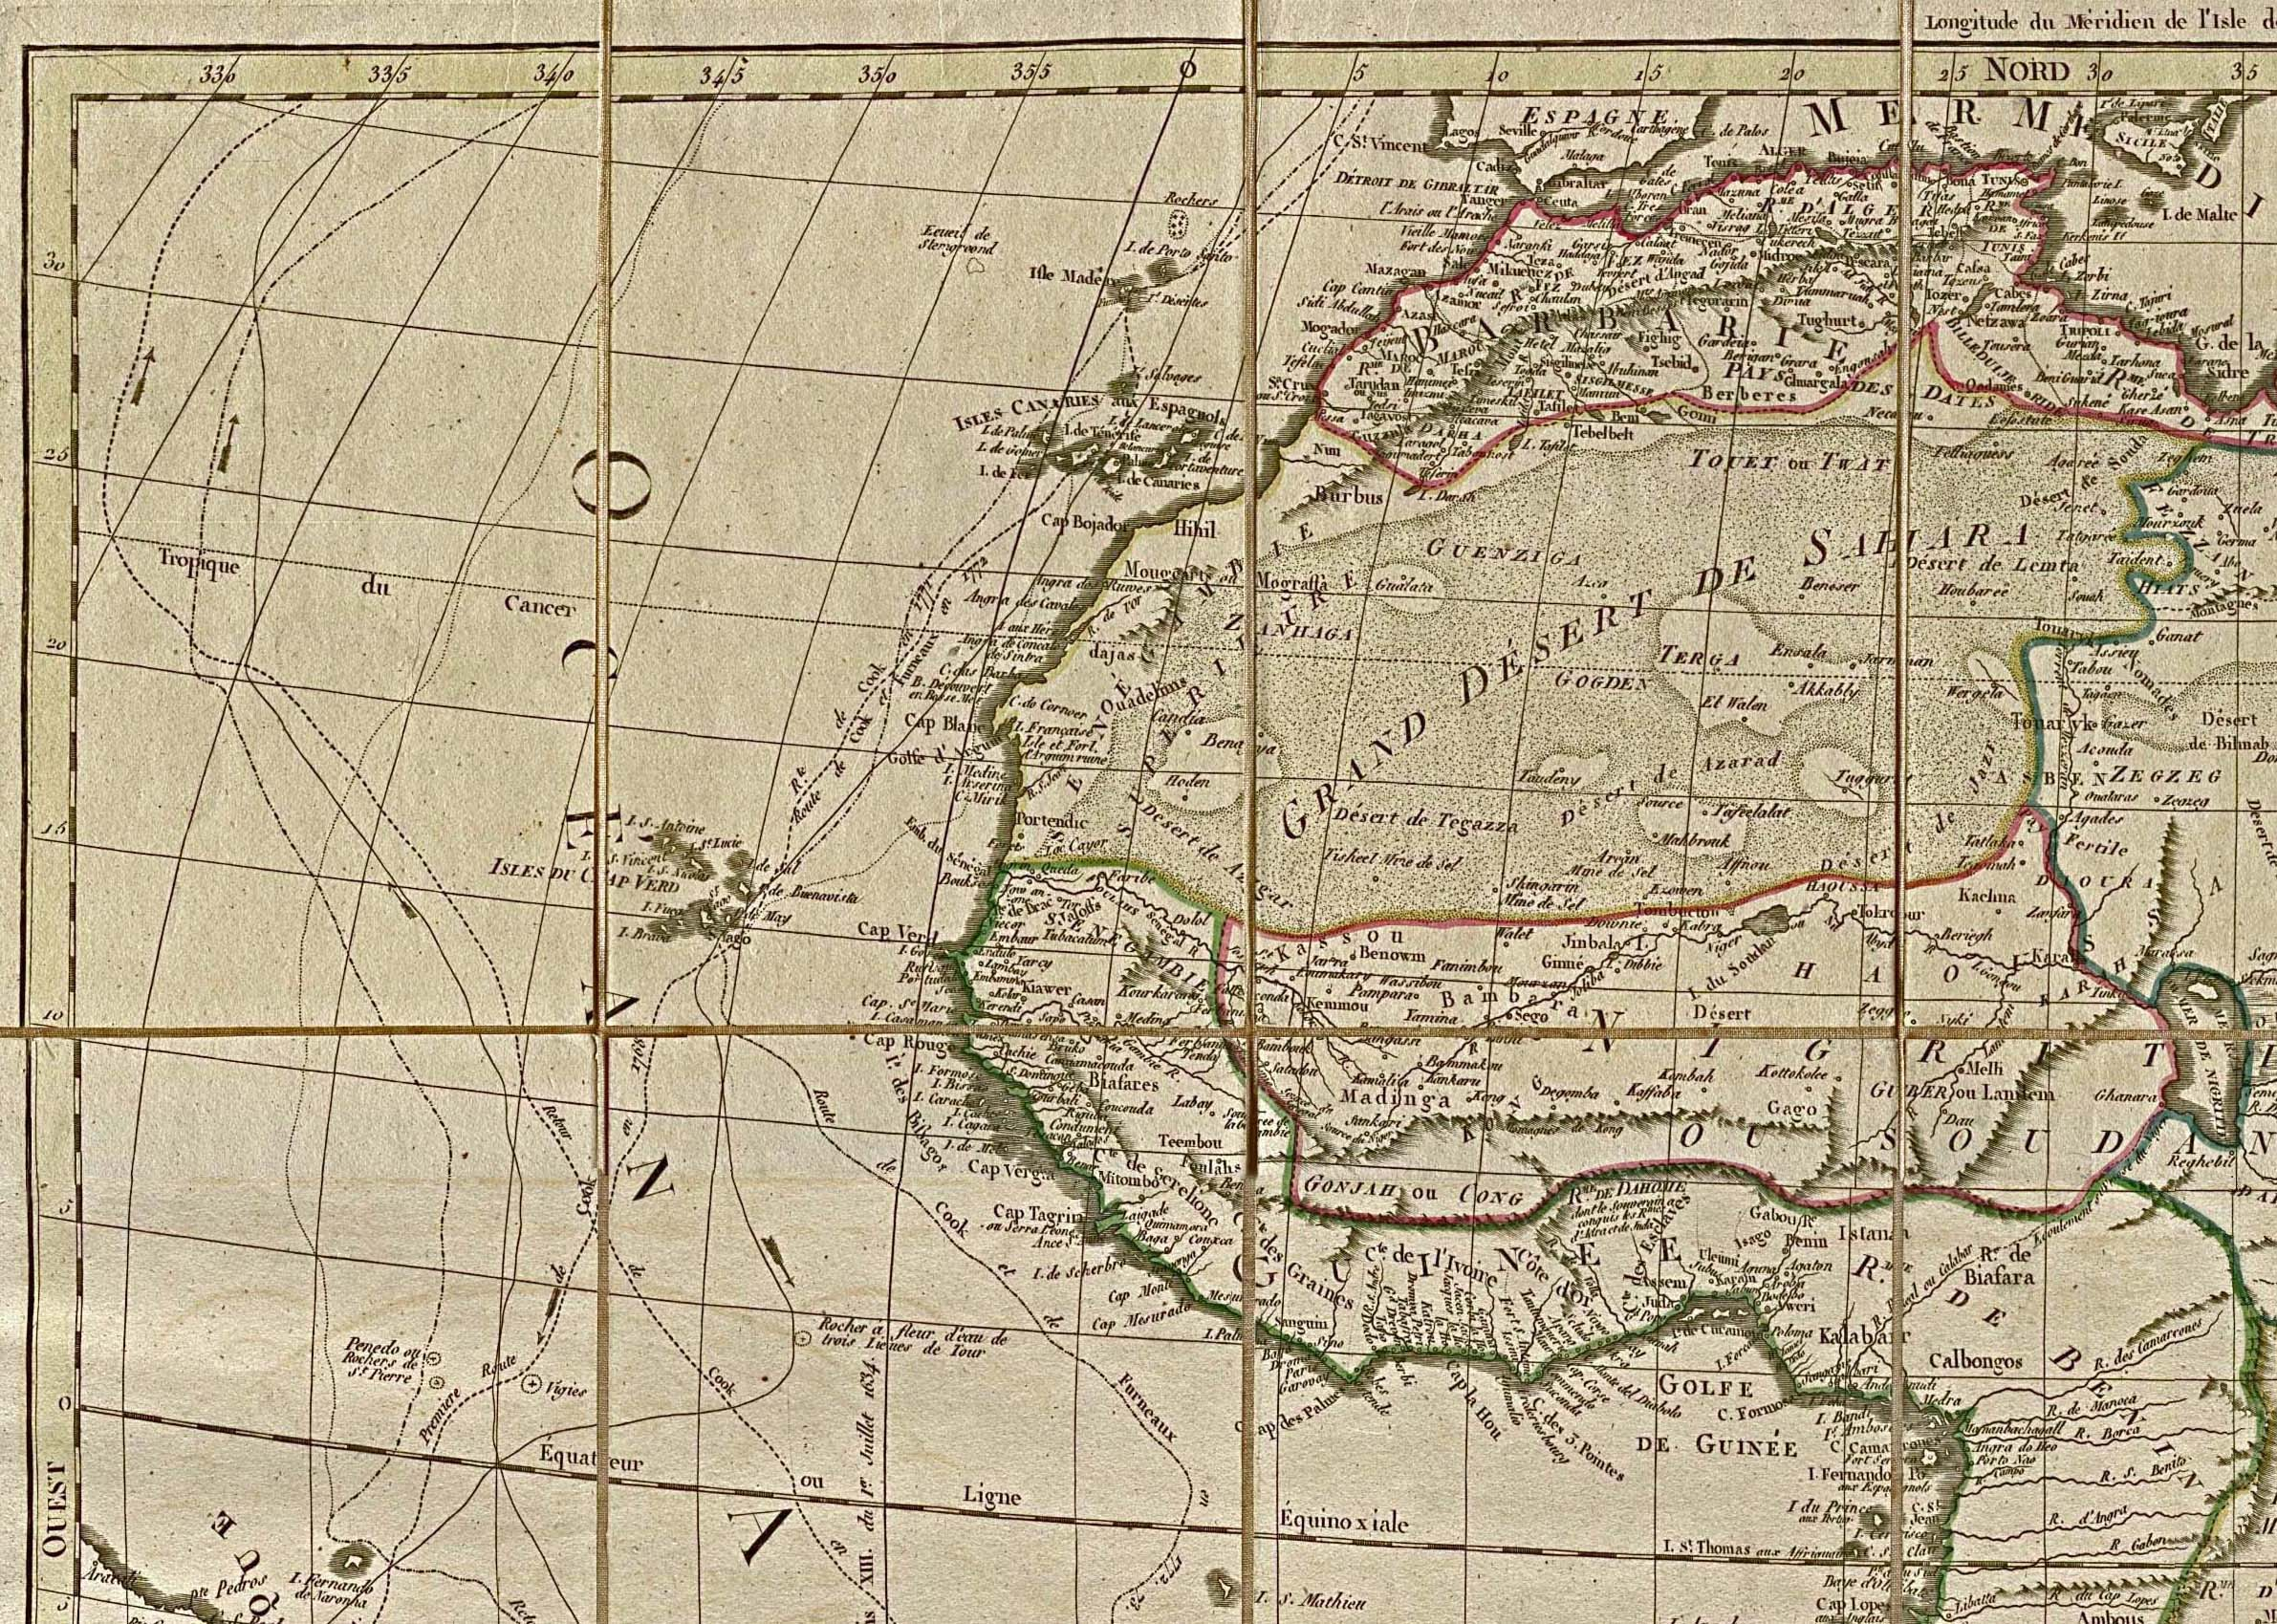 19th Century Africa Map.Africa Historical Maps Perry Castaneda Map Collection Ut Library